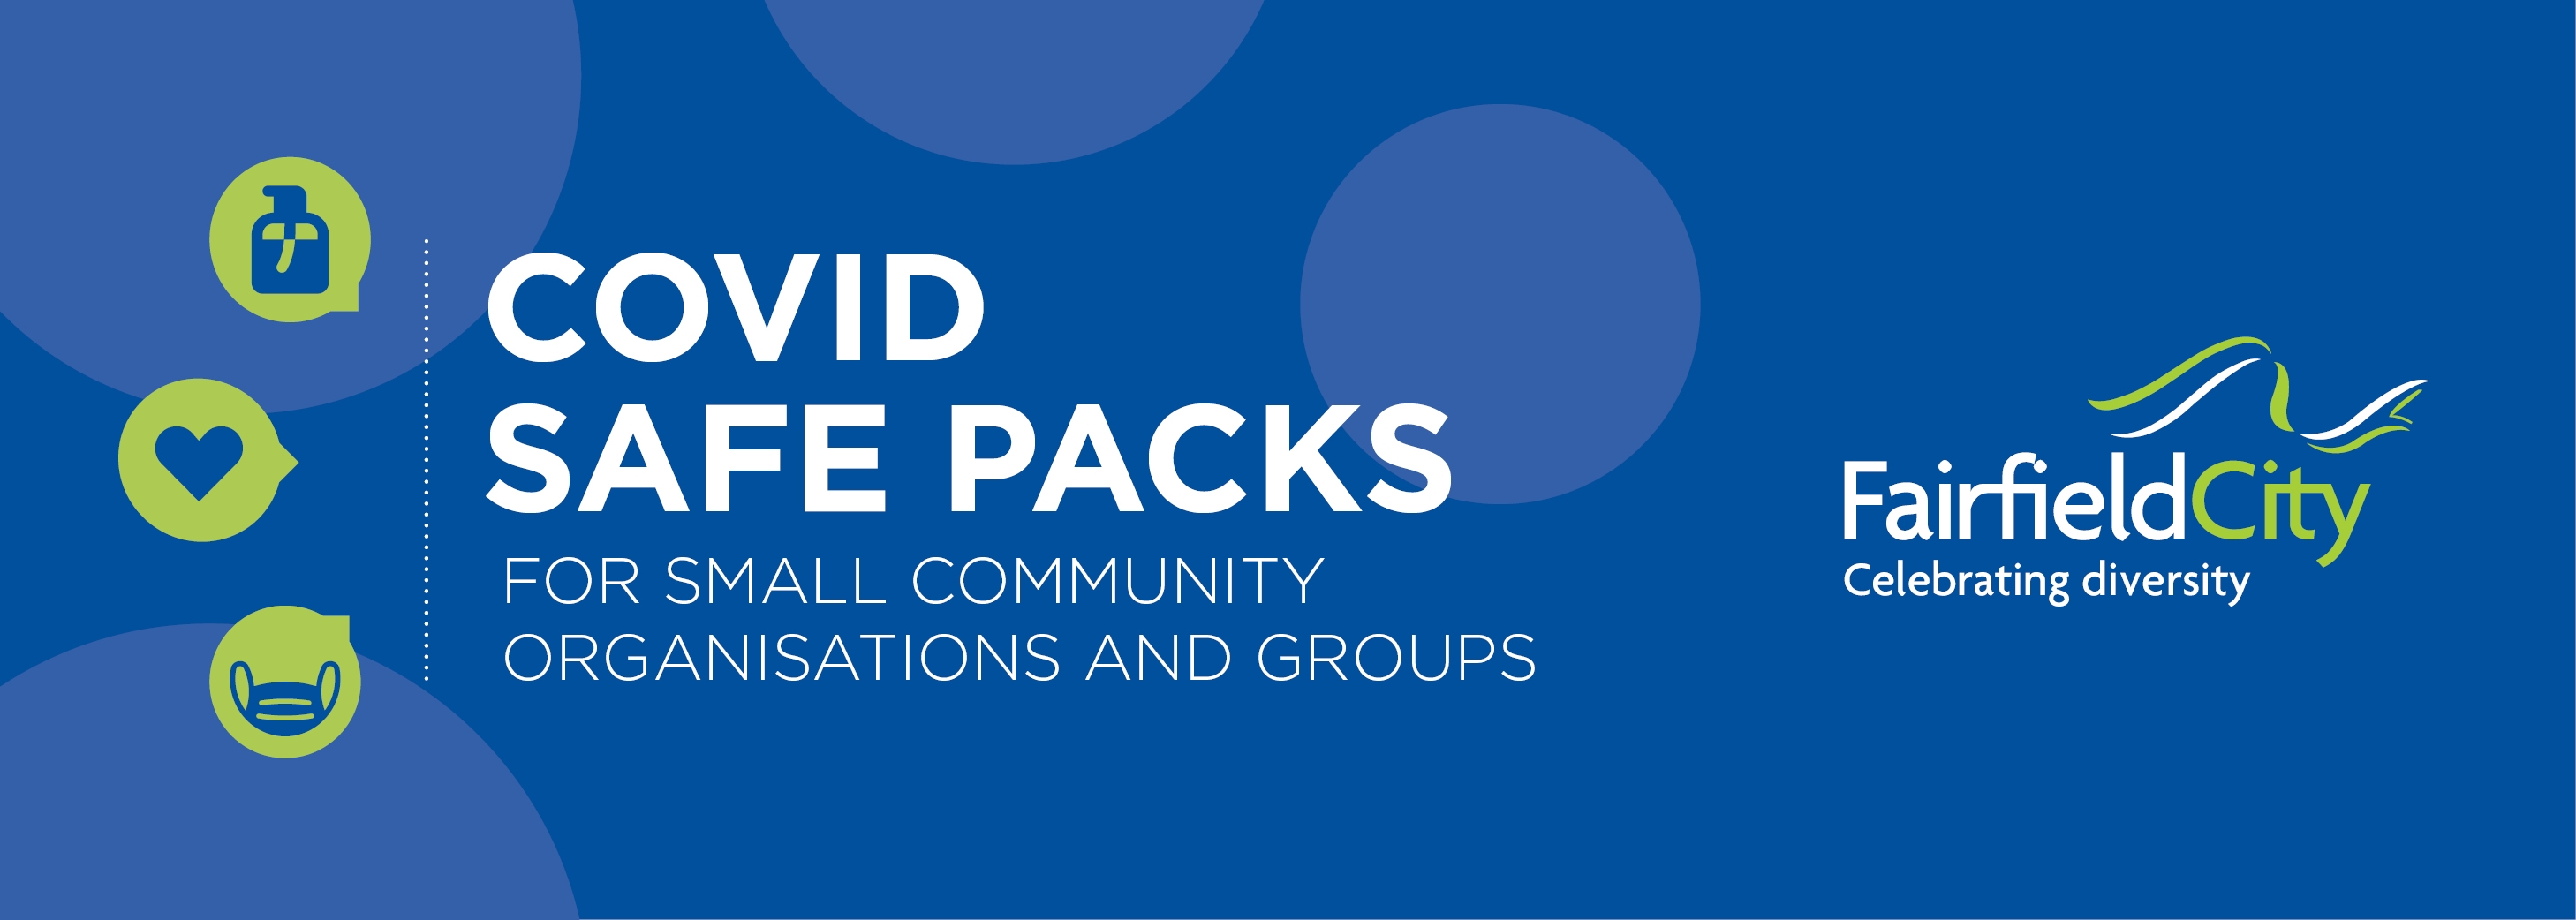 Fairfield City Covid safe packs.jpg